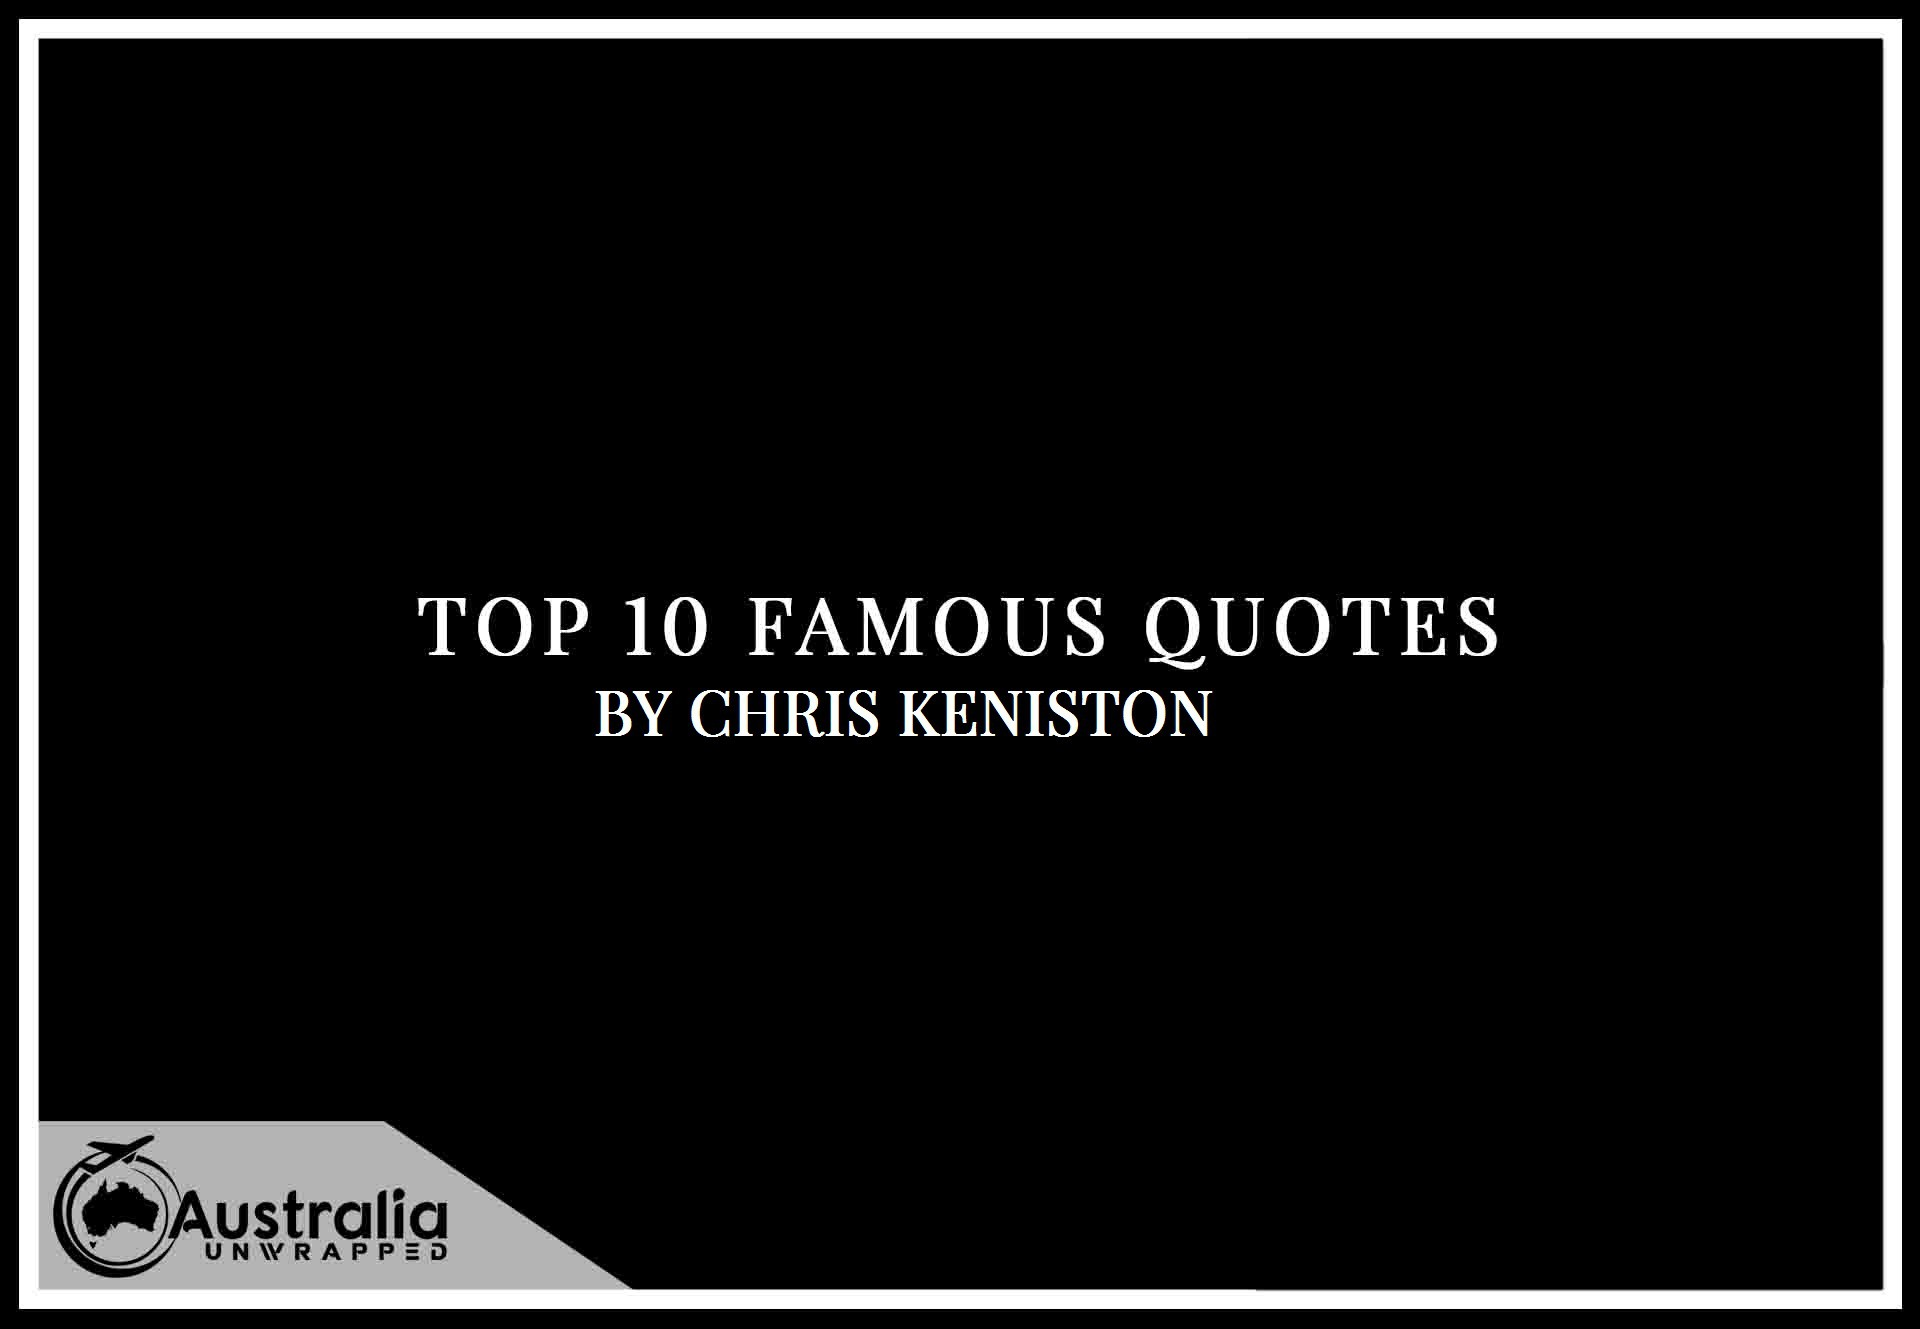 Chris Keniston's Top 10 Popular and Famous Quotes